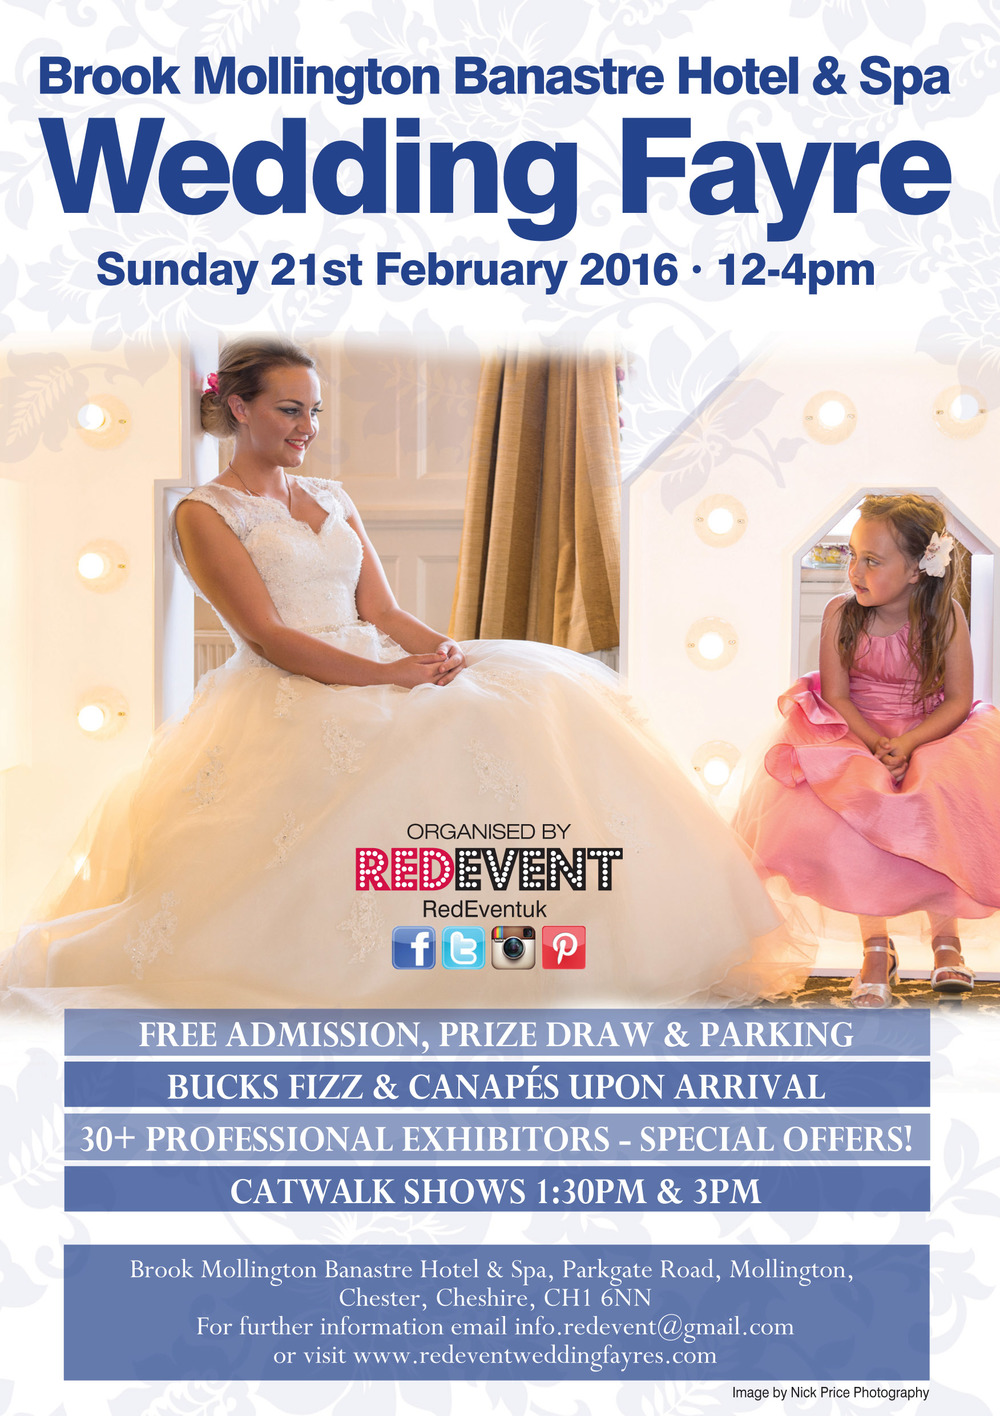 Brook Mollington Banastre Hotel & Spa Wedding Fayre